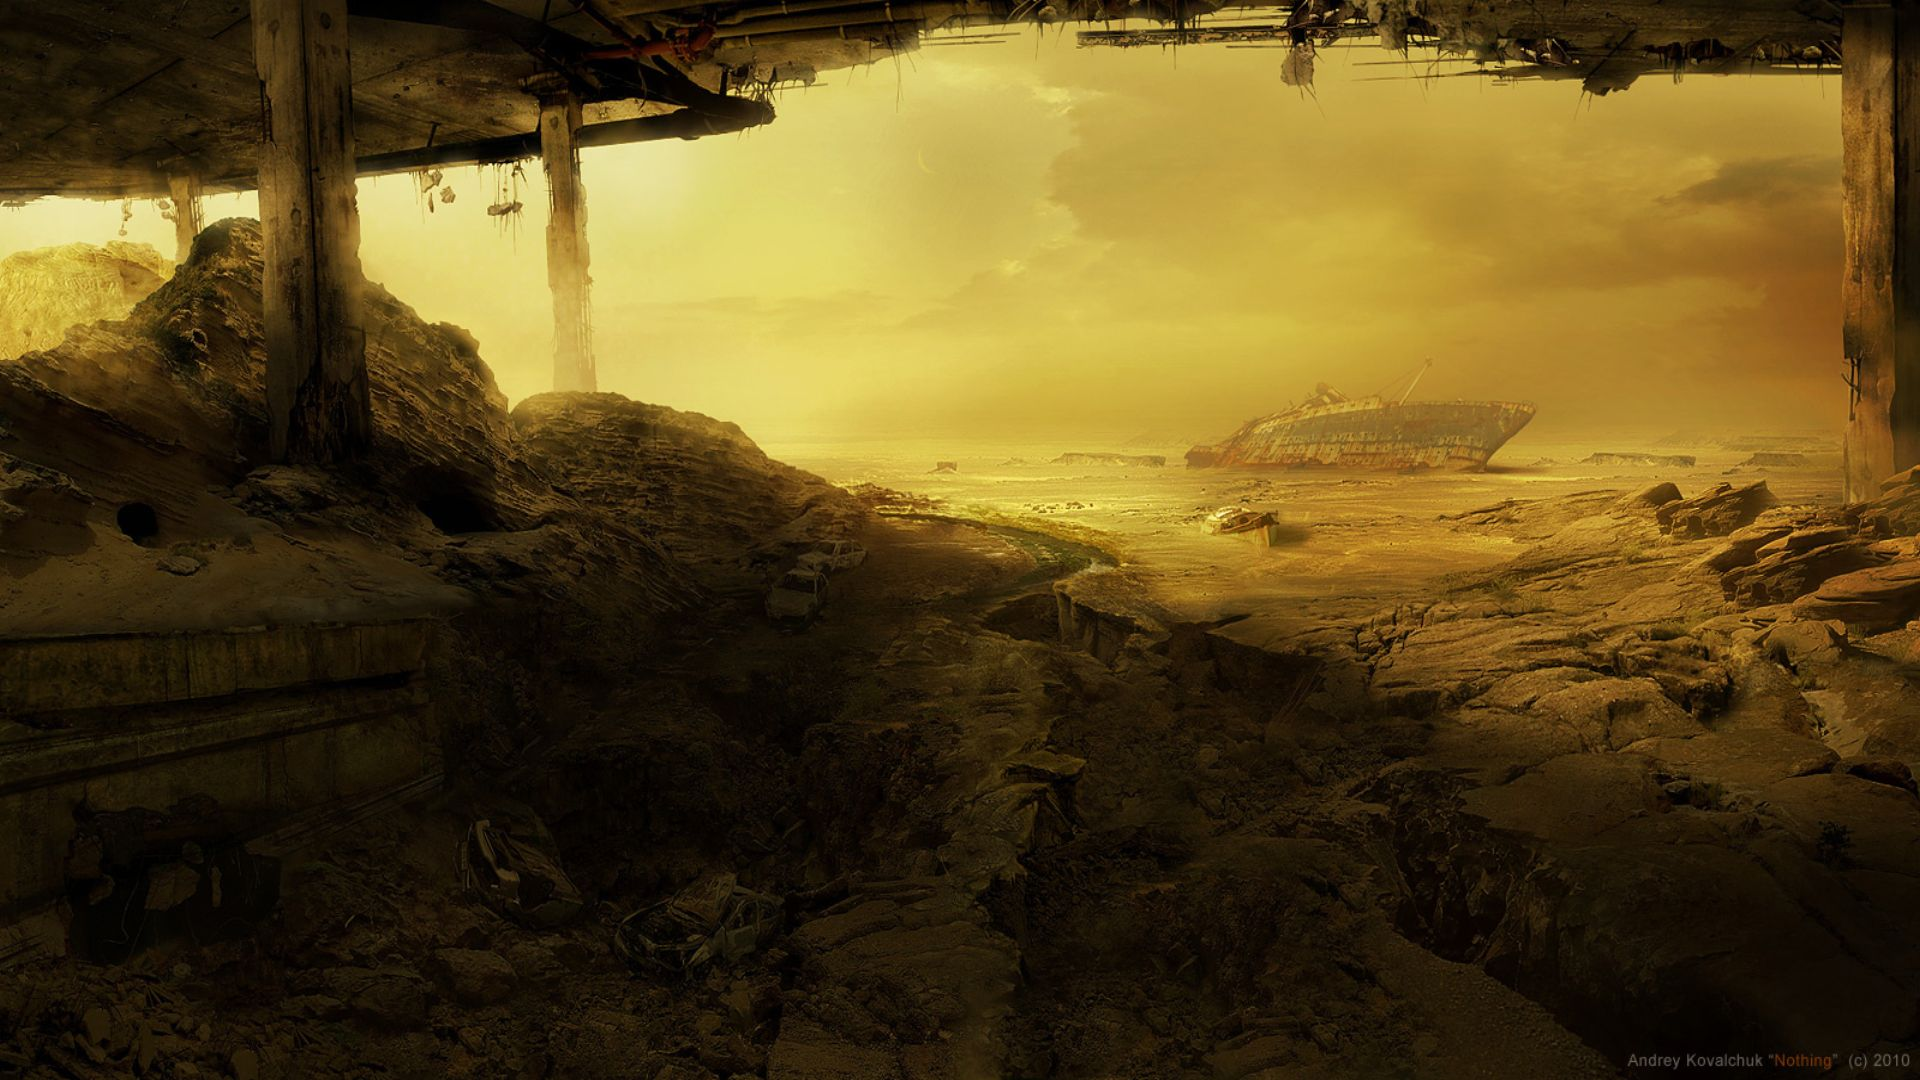 Sci Fi - Post Apocalyptic Wallpaper & Post Apocalyptic Full HD Wallpaper and Background Image | 1920x1080 ...